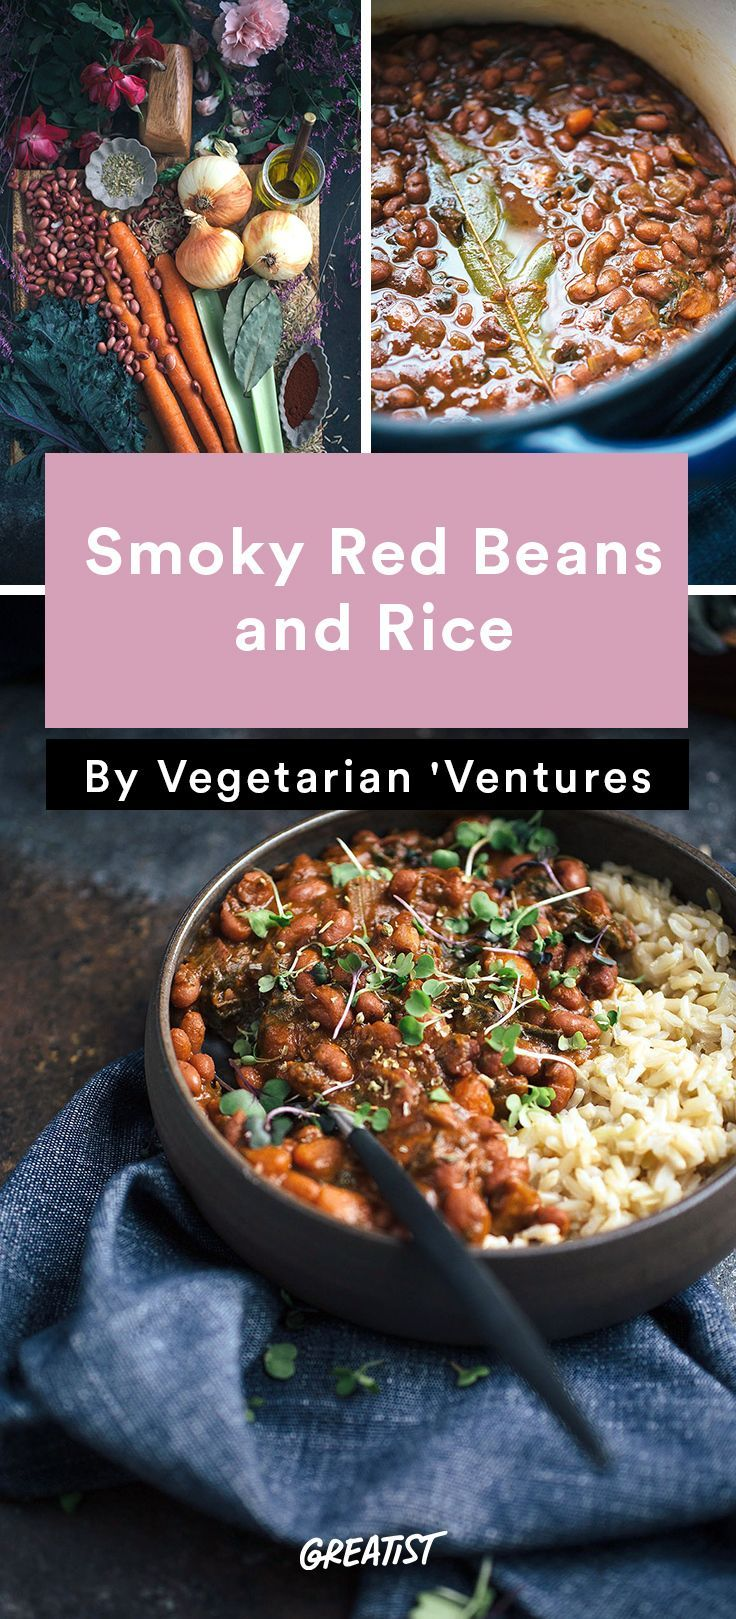 """Vegetarian Ventures roundup: Smoky Red Beans and Rice FROM """"7 Meat-Free Dinners You Need to Try Even If You're Not Vegetarian"""" 